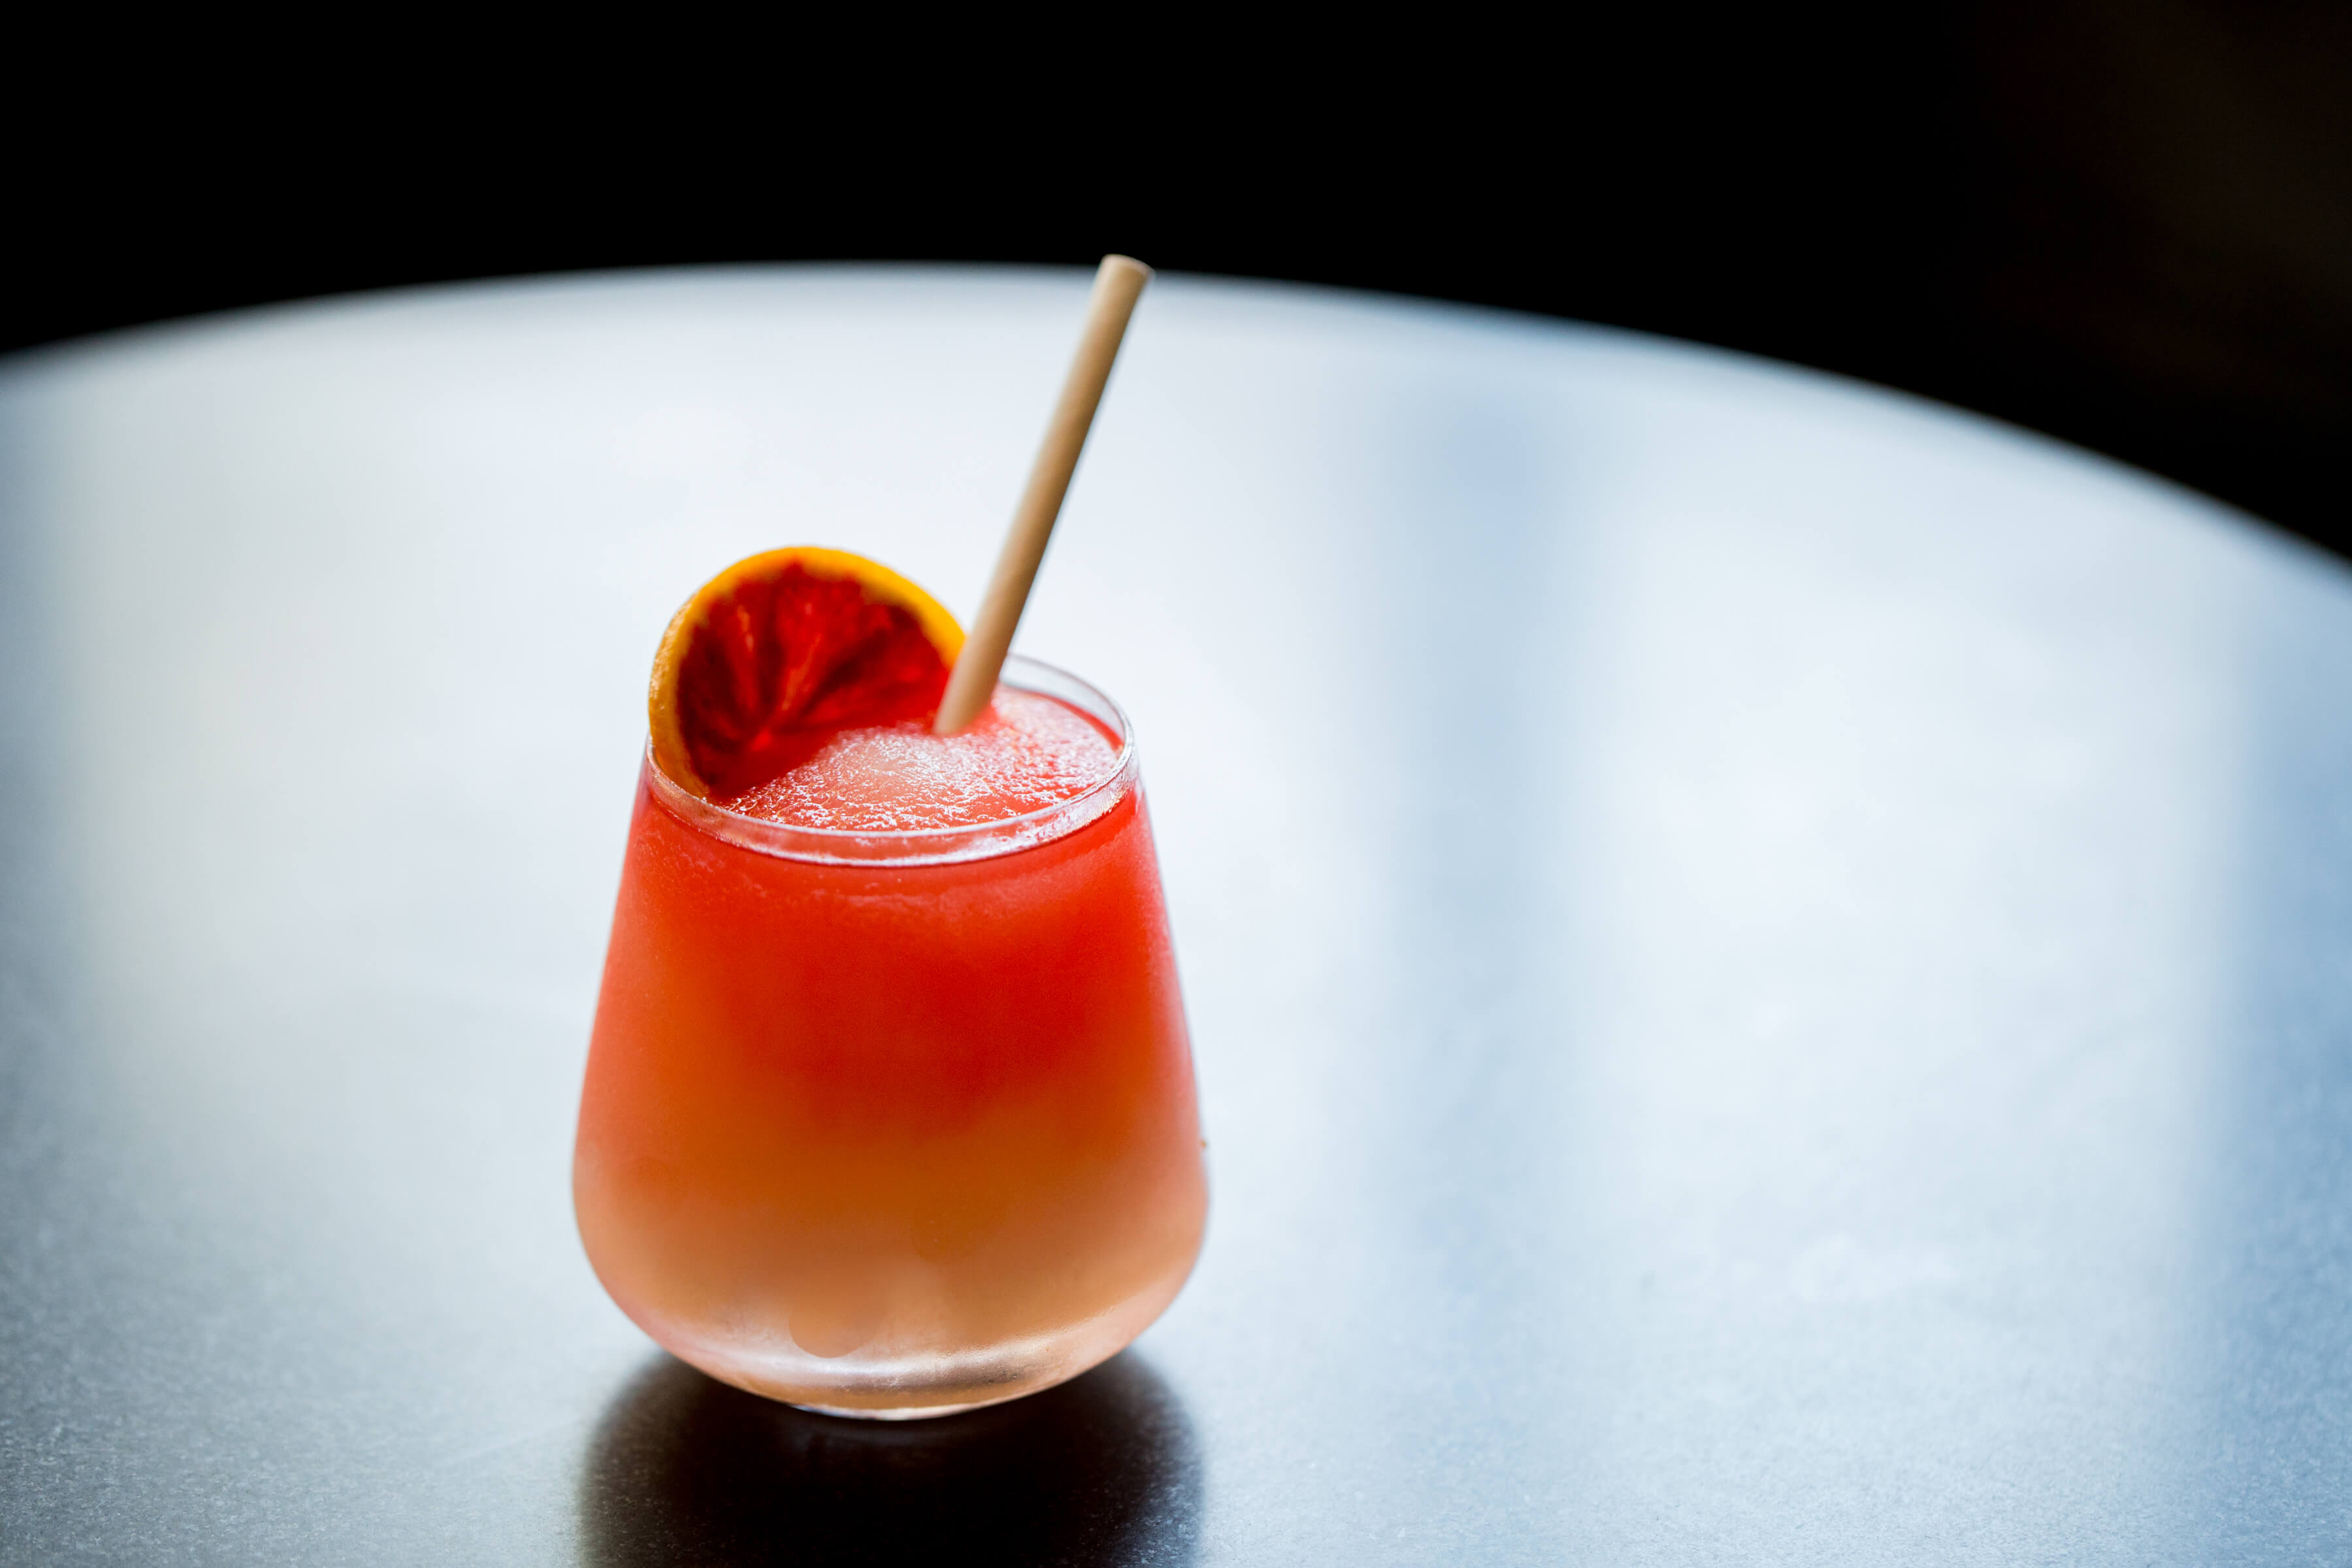 FroGroni Negroni cocktail from Foreign Cinema and Laszlo Bar - 9 #negroniweek riffs